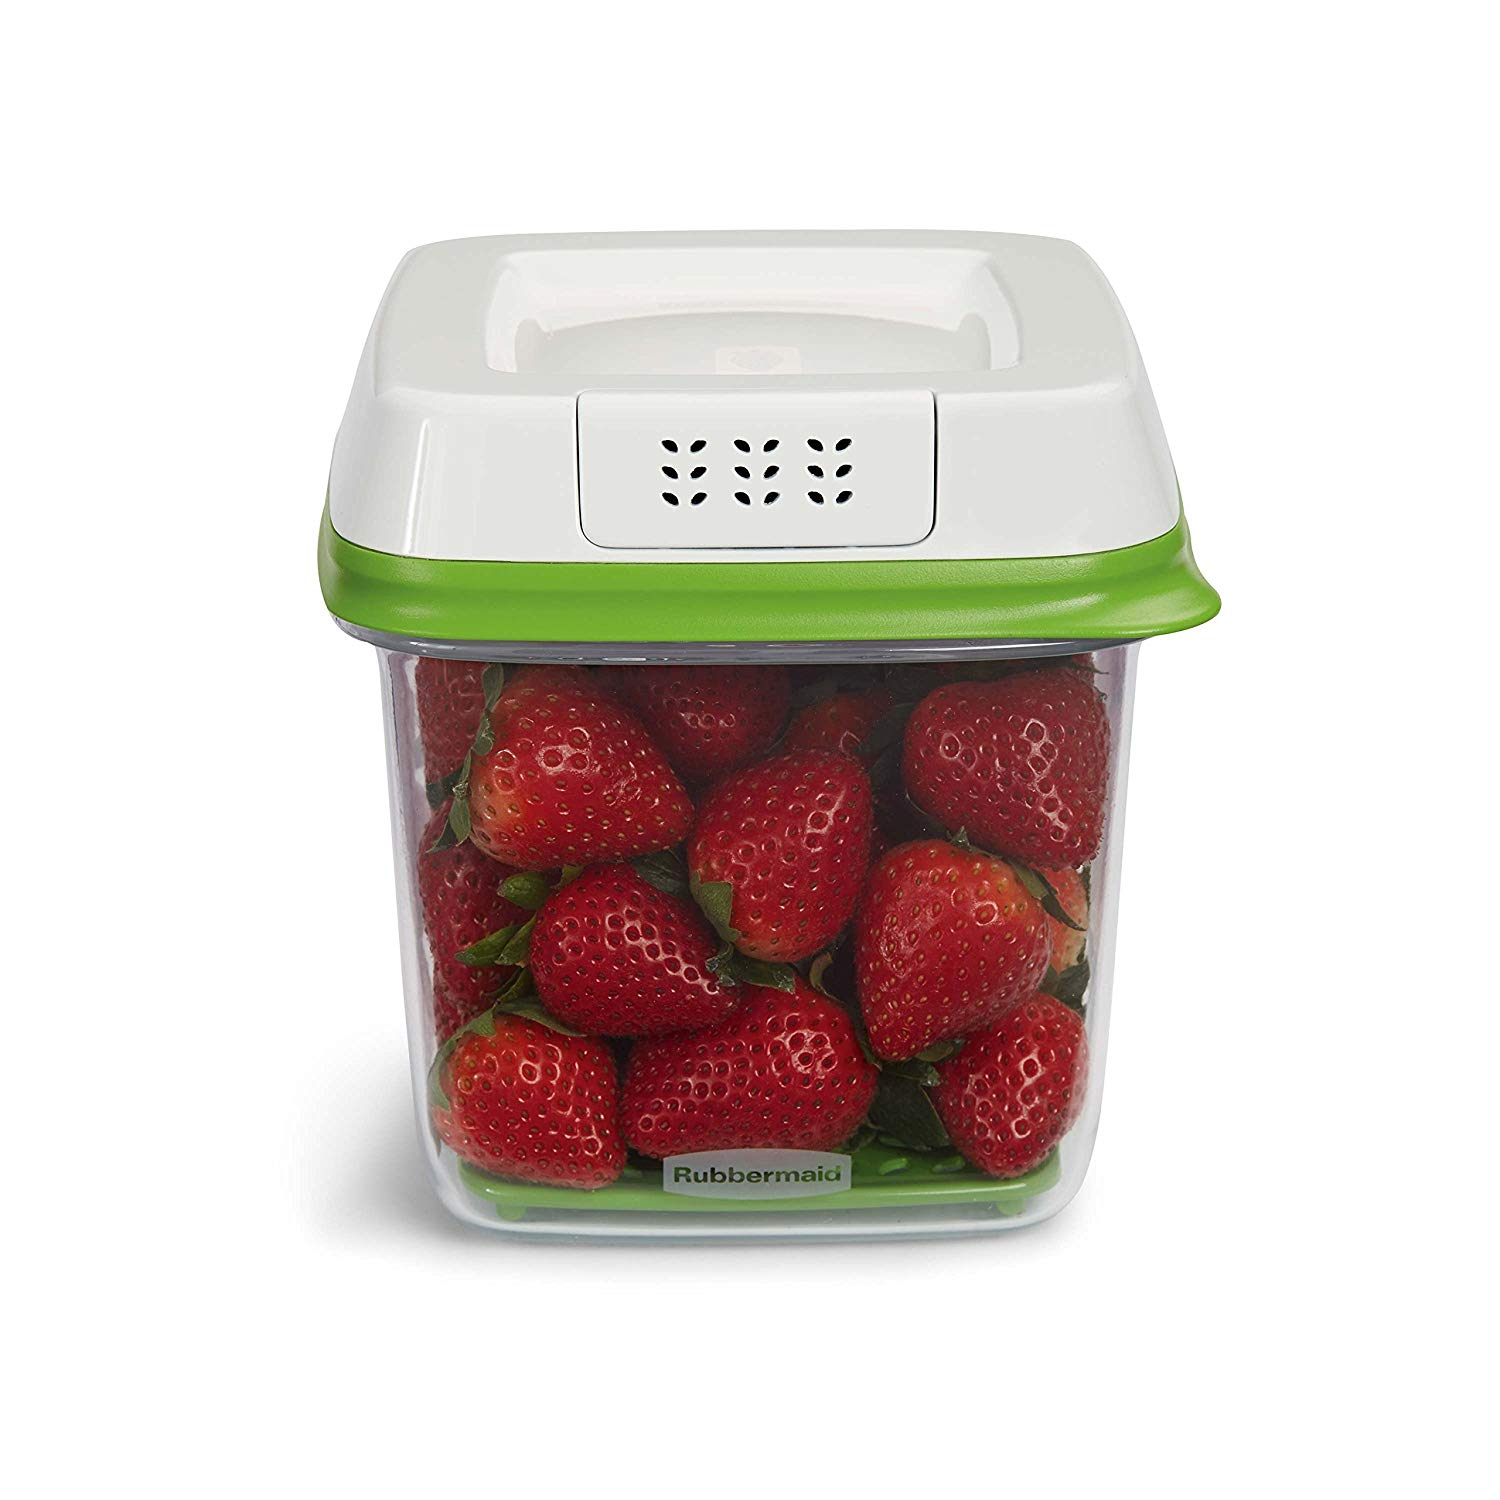 Rubbermaid FreshWorks Produce Saver Medium, 6.3-Cup Container